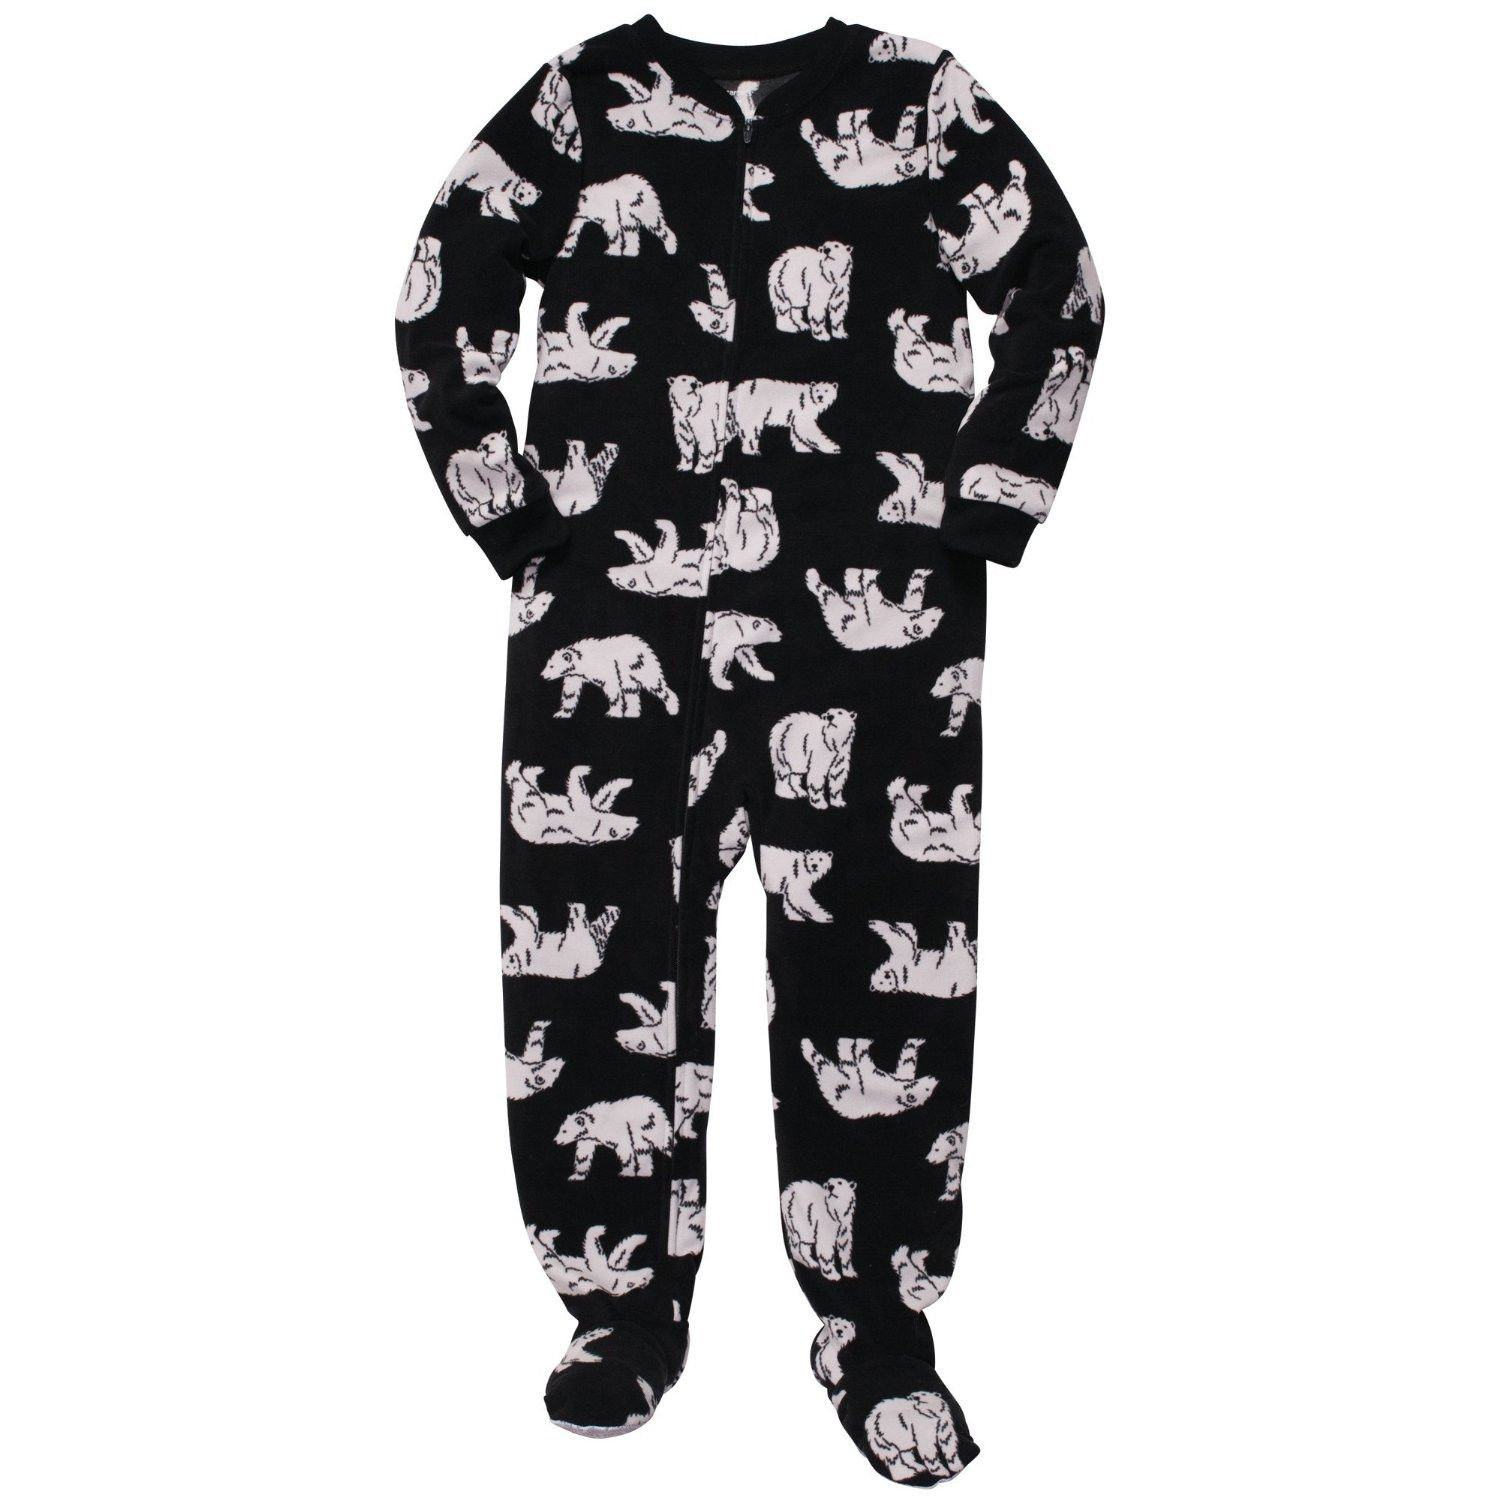 ddbc3c6ddf9f Amazon.com  CARTER S Boy s Black Polar Bear Winter Fleece Footed ...